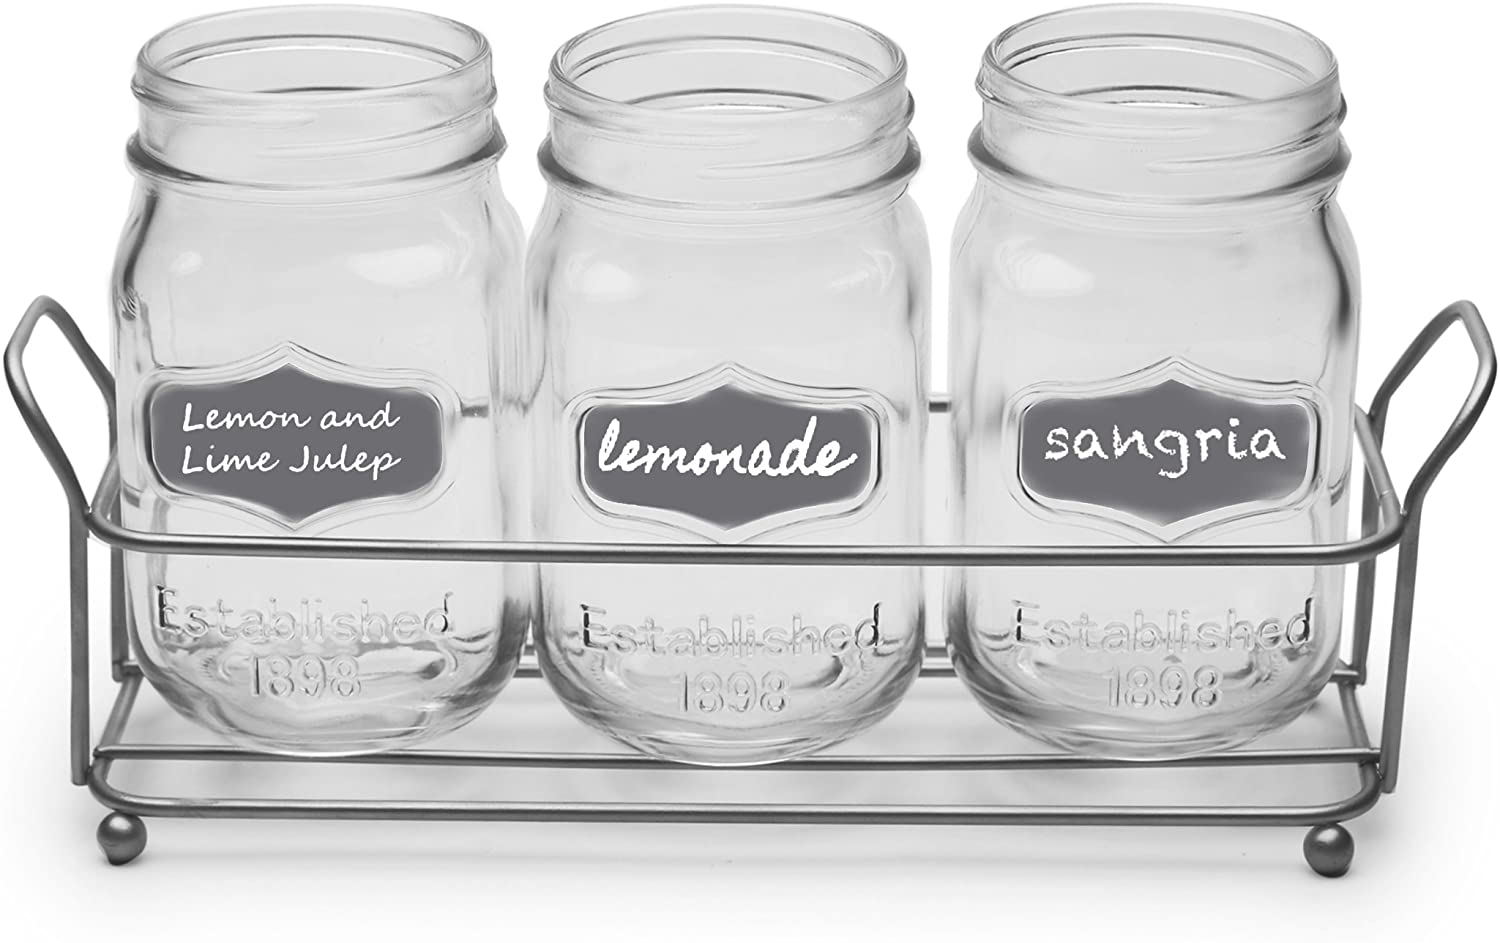 Circleware Trio Grand Mason Jar Glasses with Metal Holder Stand, Set of 4 Home & Kitchen Farmhouse Decor Beverage Drink Tumblers for Water, Beer and Juice, 17 oz, Silver